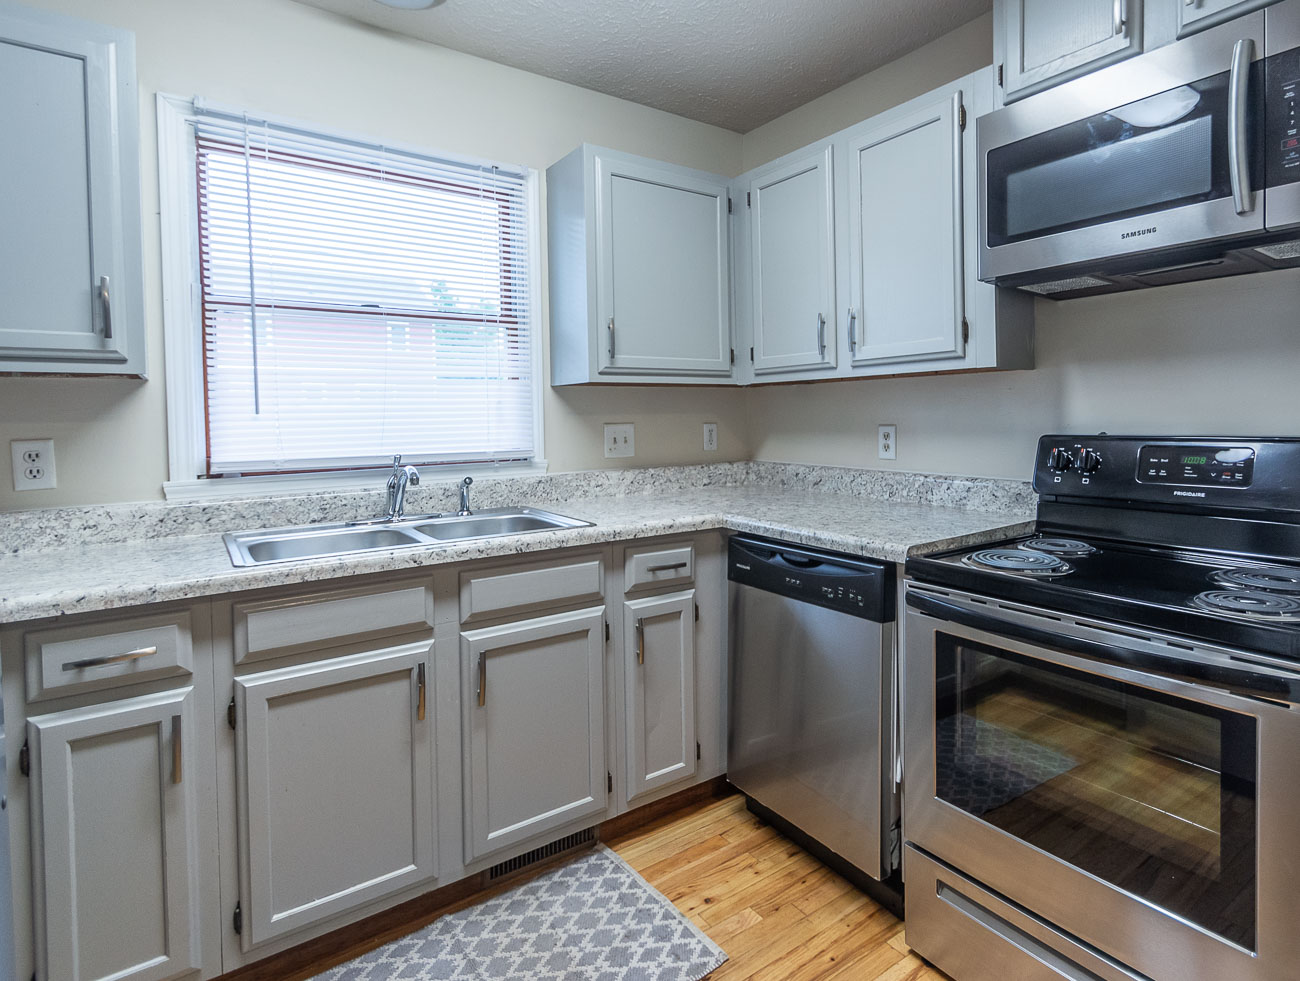 For Rent in Bloomington, IN | Tailgate Crossing